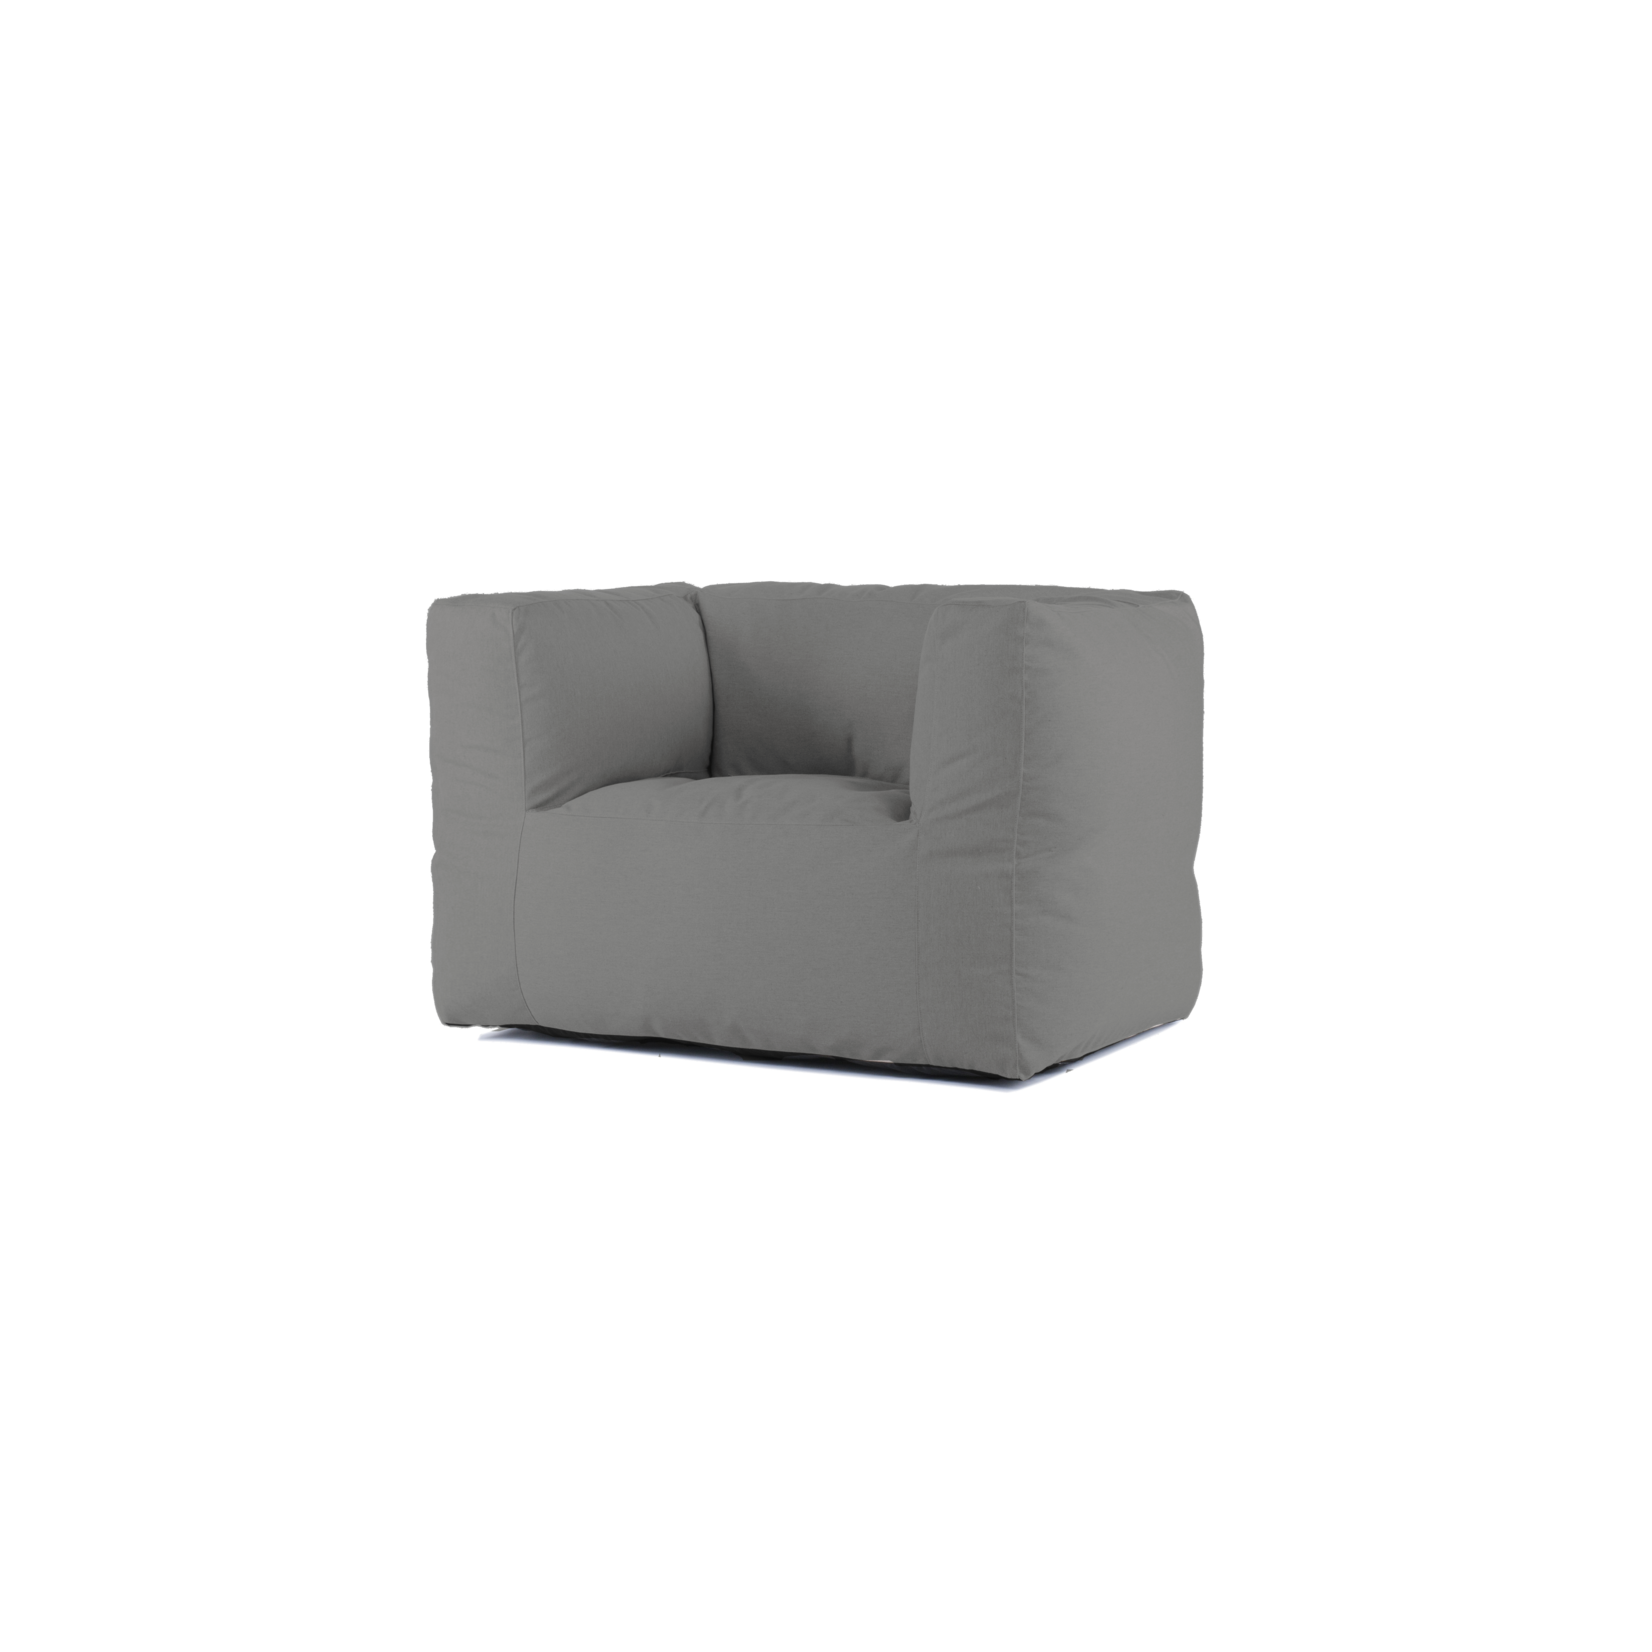 Bryck Bryck Chair   One seat   ECOLLECTION